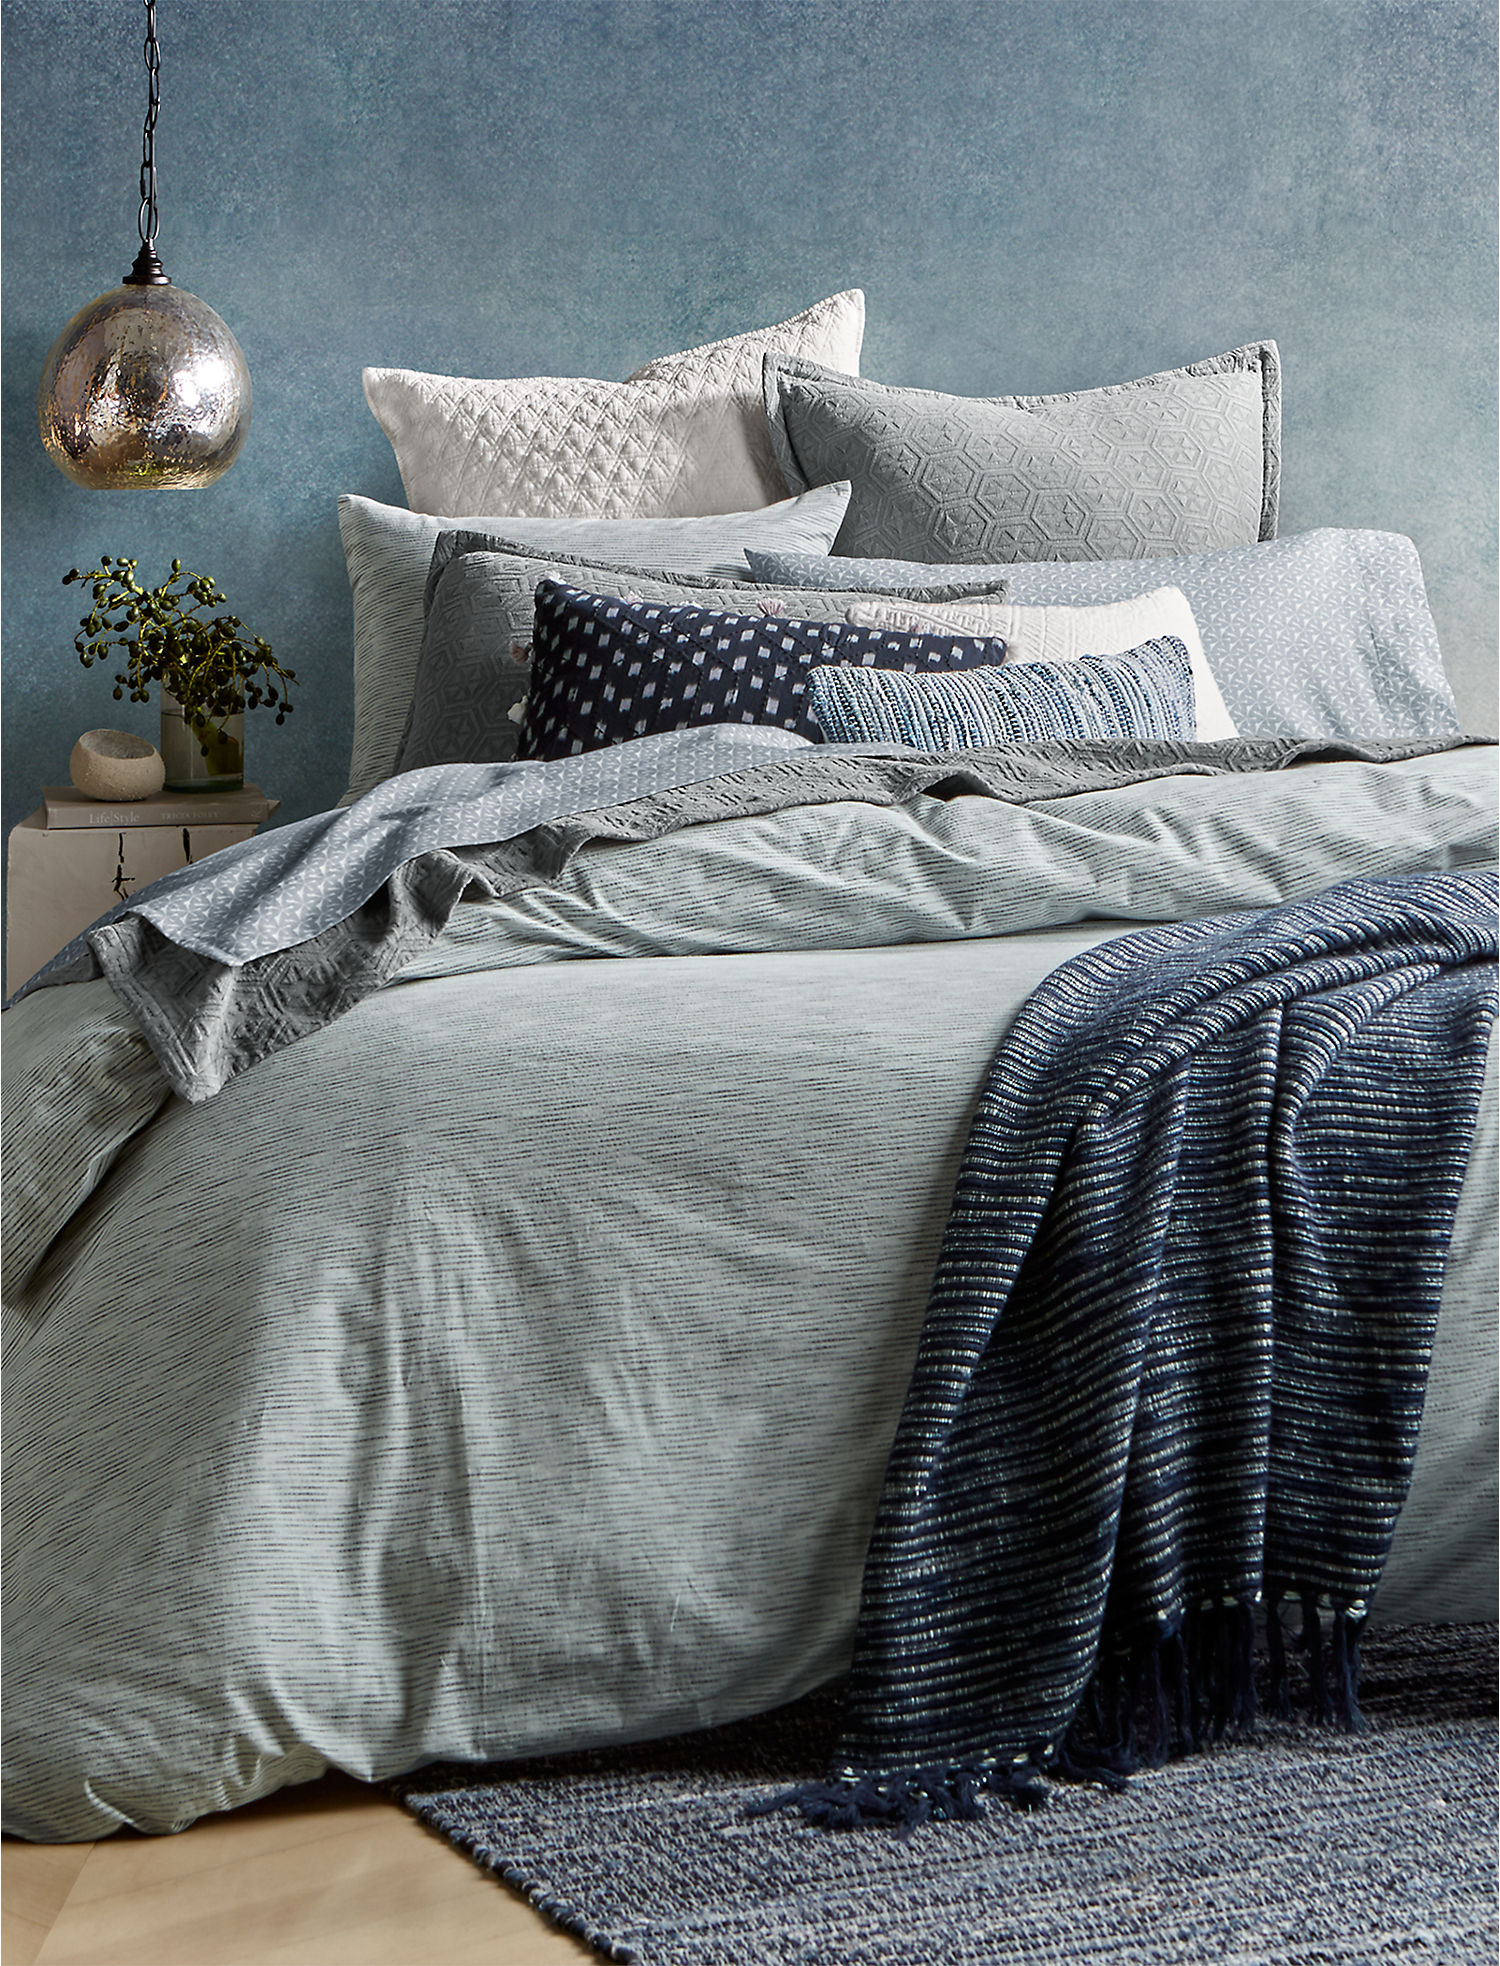 bedding set background also ideas picture understand quilts furniture comforters comforter sets grey and the now bedroom bed curtains with gray of best for